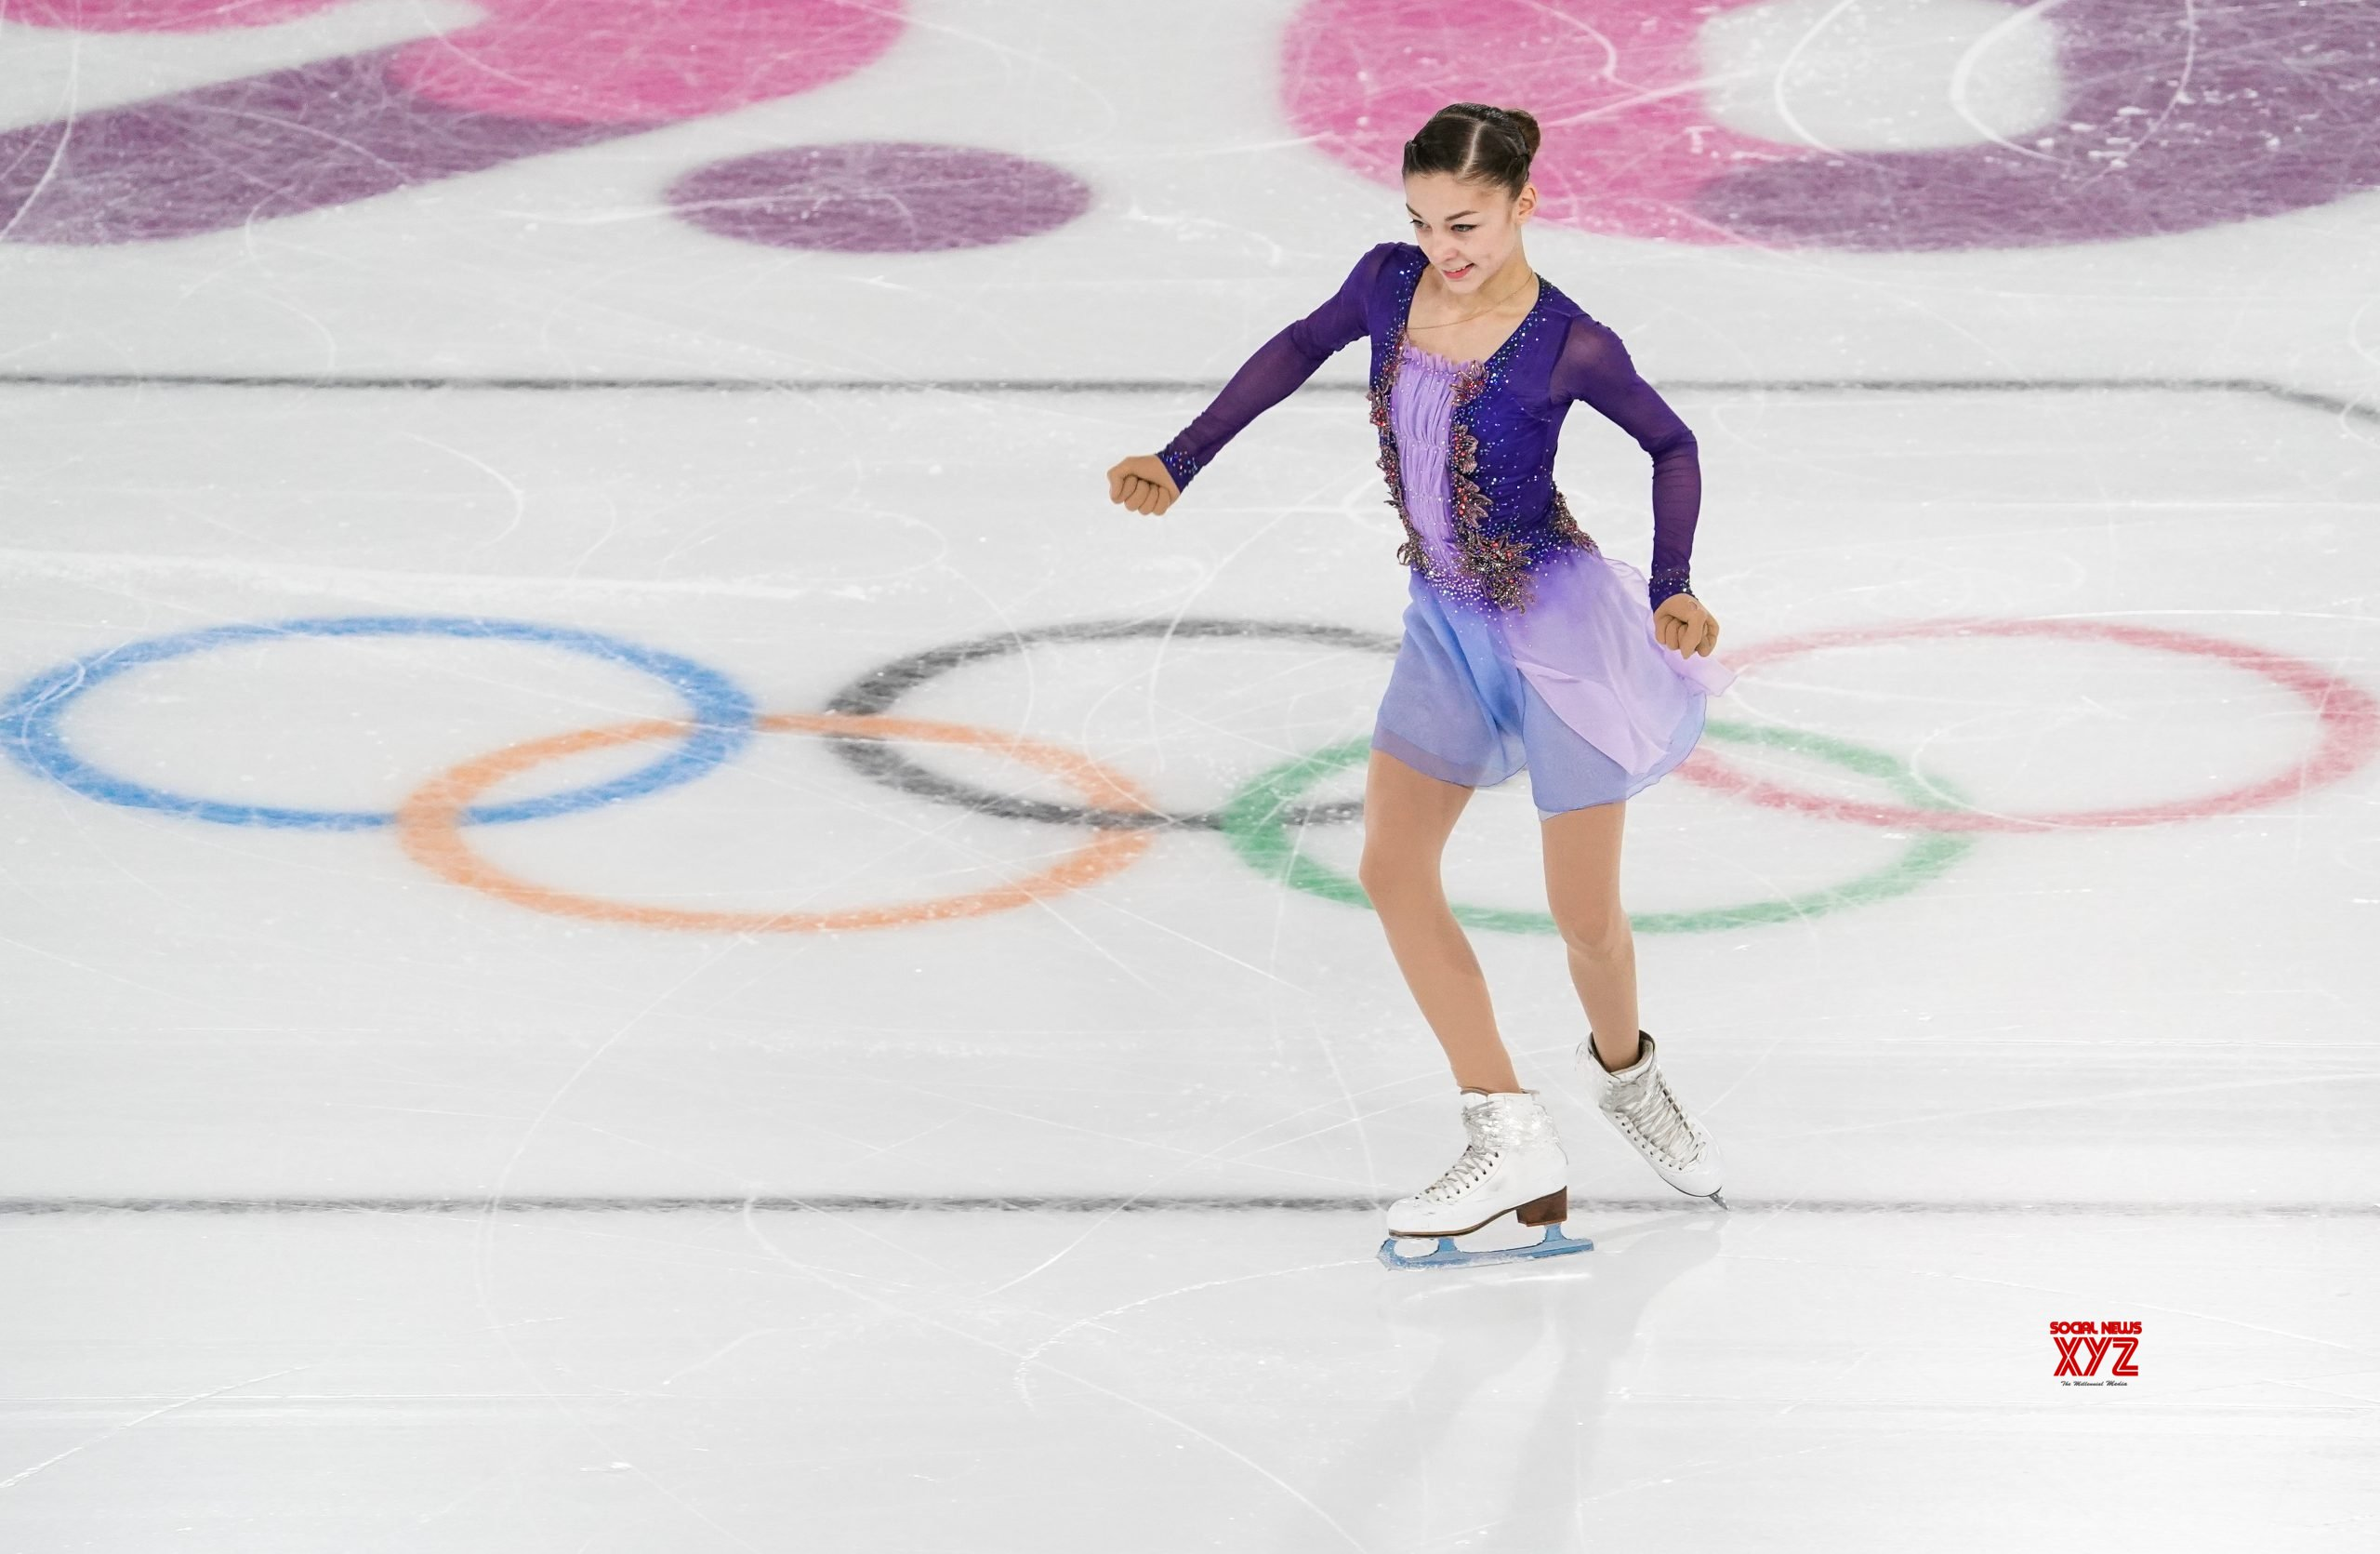 SWITZERLAND - LAUSANNE - WINTER YOG - FIGURE SKATING - WOMEN'S SINGLES SKATING #Gallery